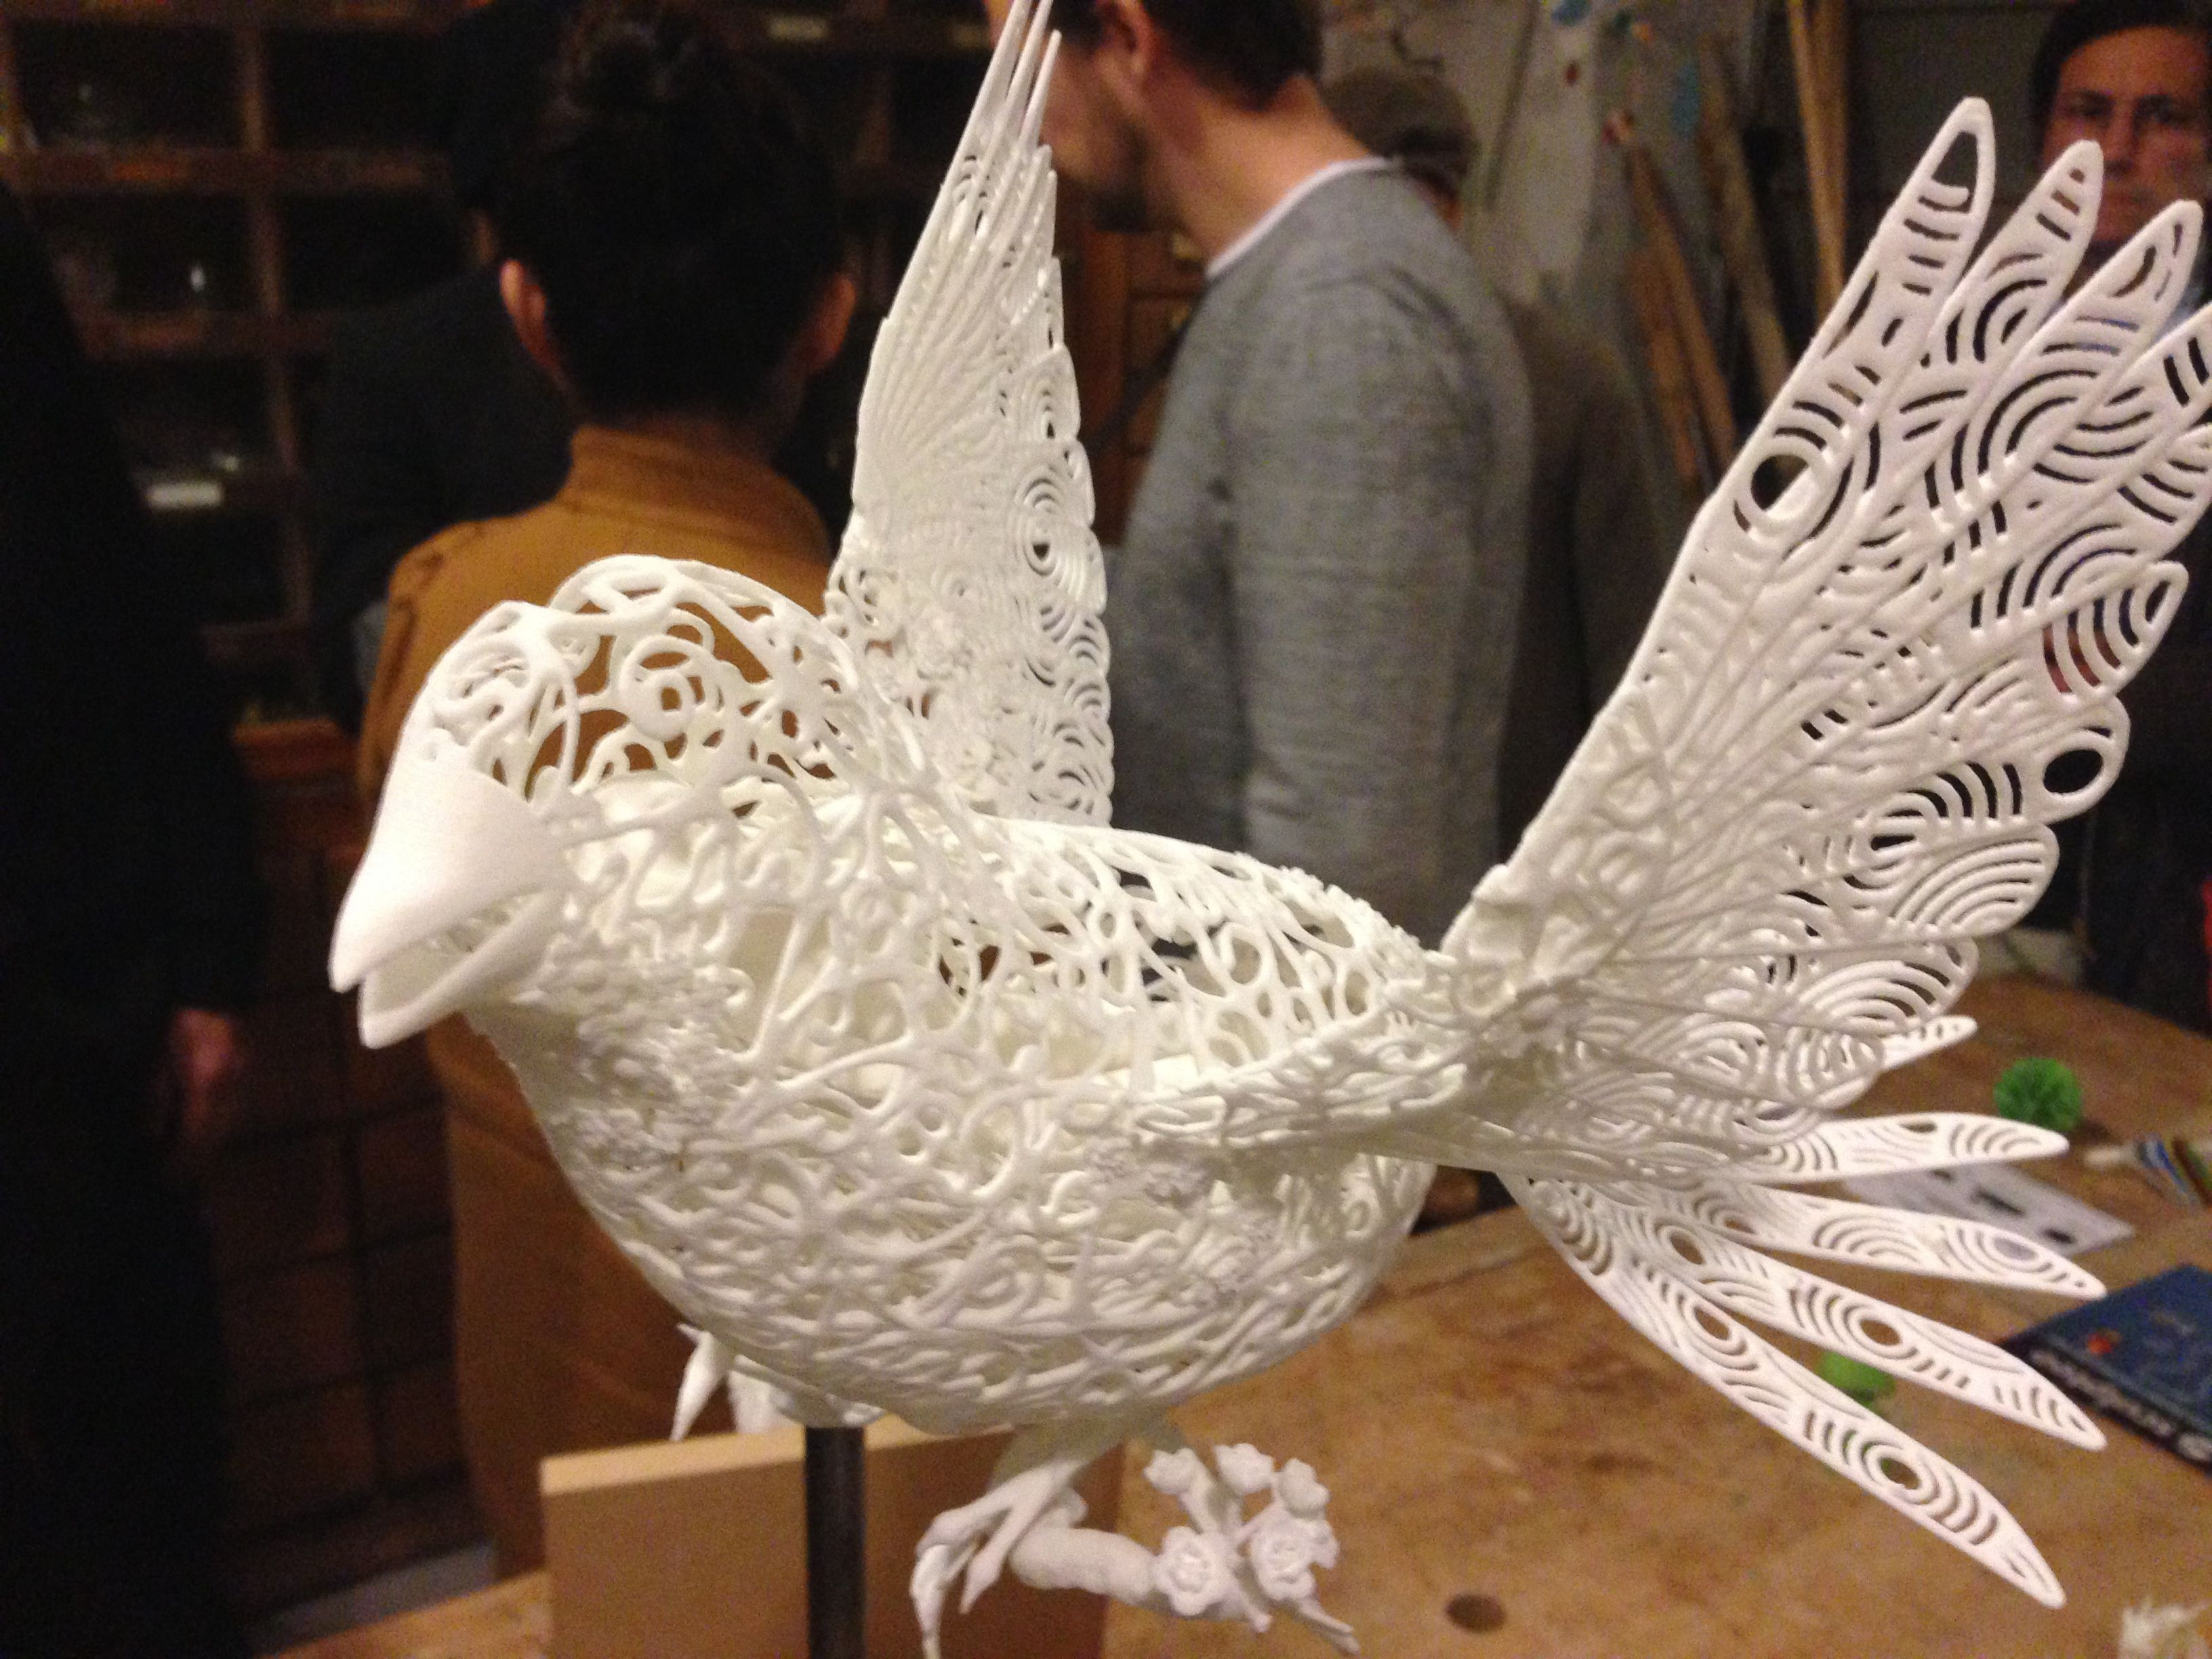 3D Printing  and Laser Cutting Meetup by Sculpteo